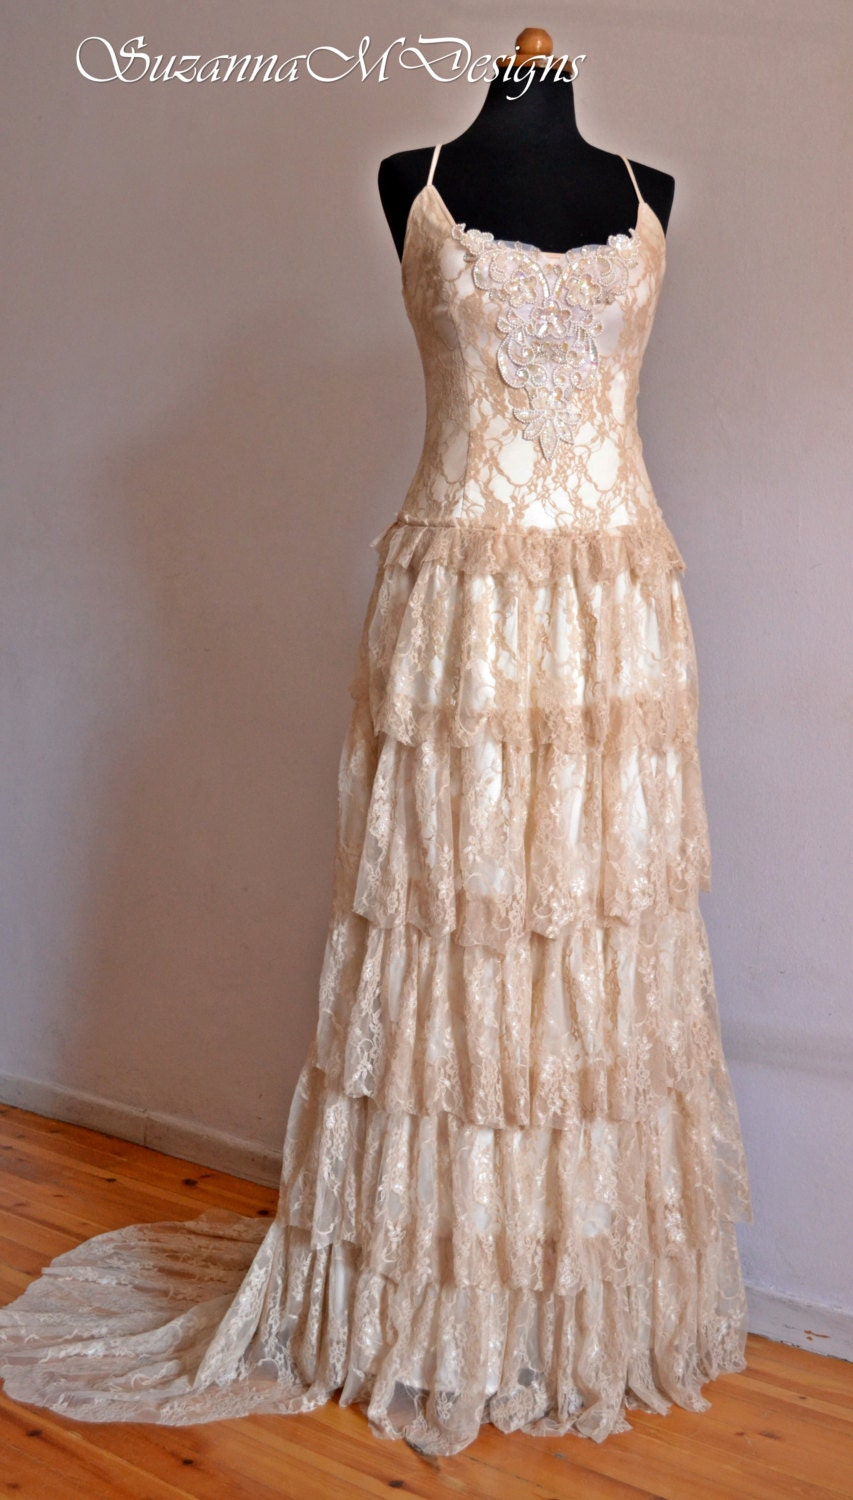 boho wedding dress cream wedding dress lace wedding dress